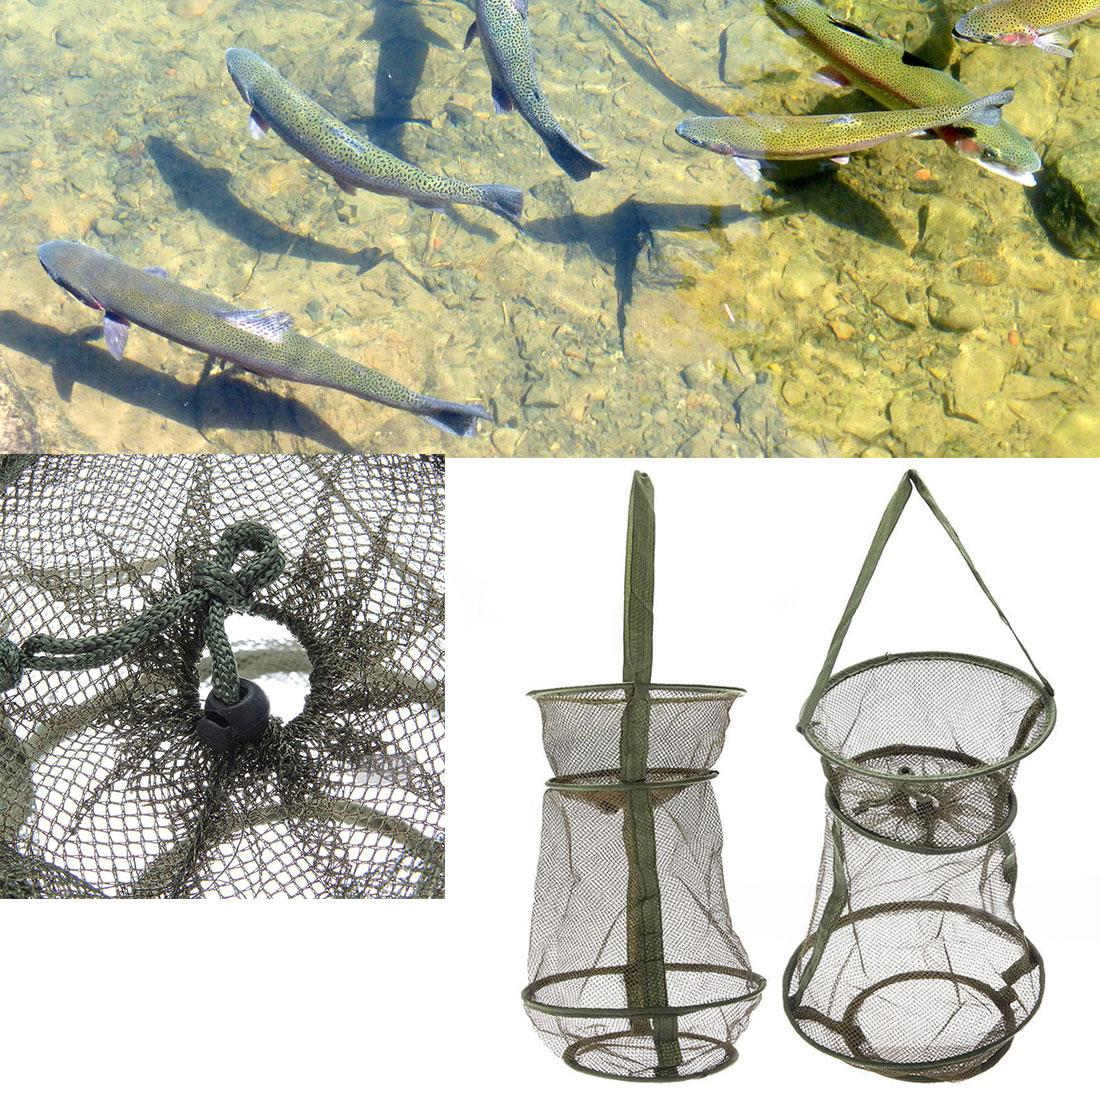 Fishing Nets for sale - Fish Nets online brands, prices & reviews in ...